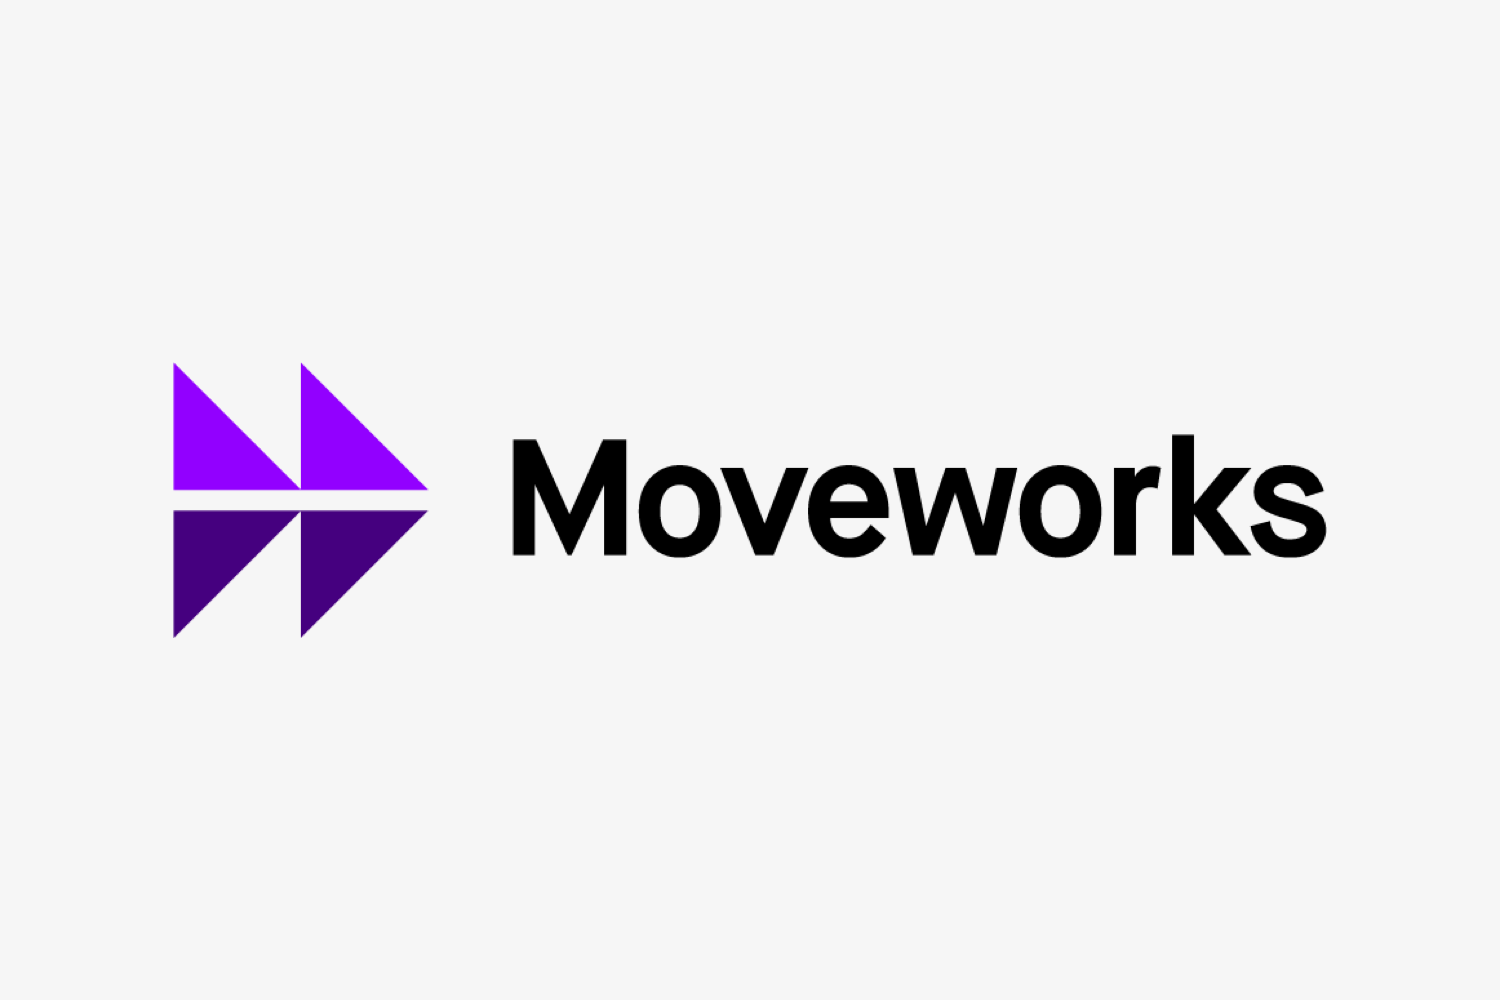 Image for article Moveworks — a new interaction model for enterprise workflows